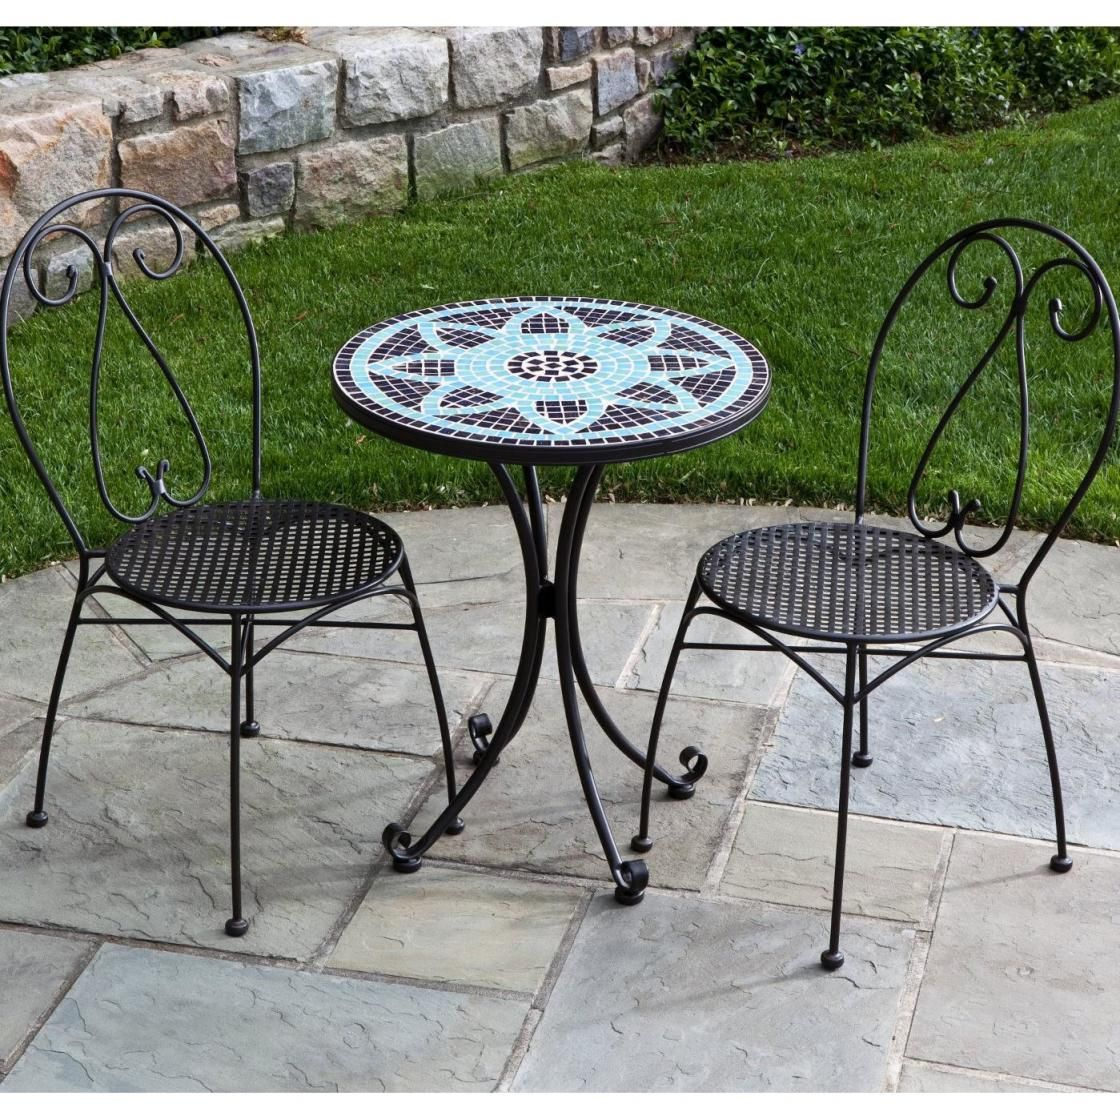 Appealing outdoor patio furniture ideas featuring trendy for Wrought iron cafe chairs